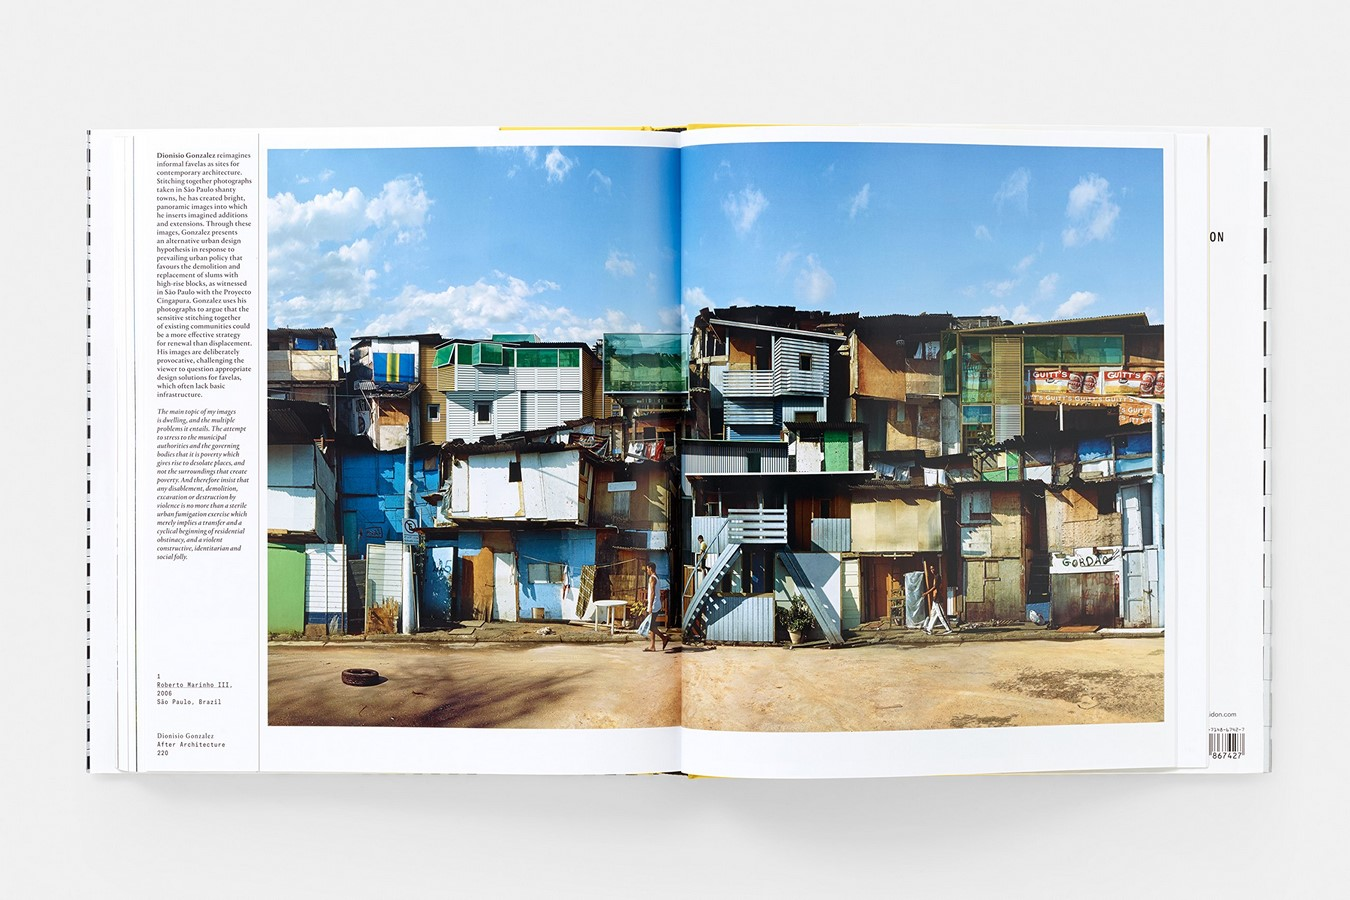 List of 10 books related to Architectural Photography - Sheet14